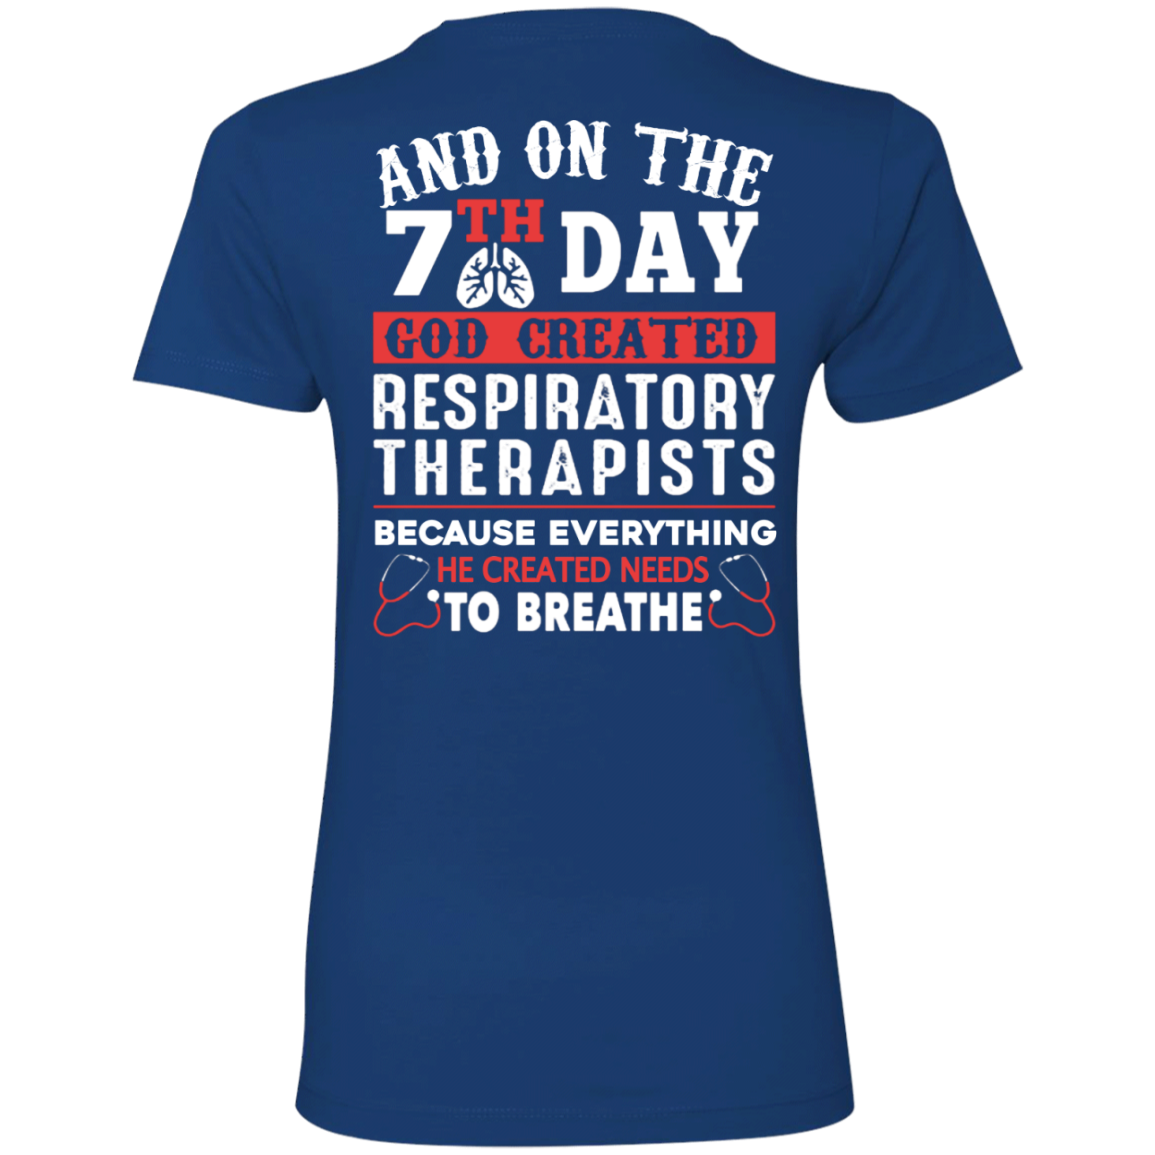 And on the 7Th Day GOD CREATED Respiratory Therapists Because Everything He Created Needs To Breathe - The Sun Cat